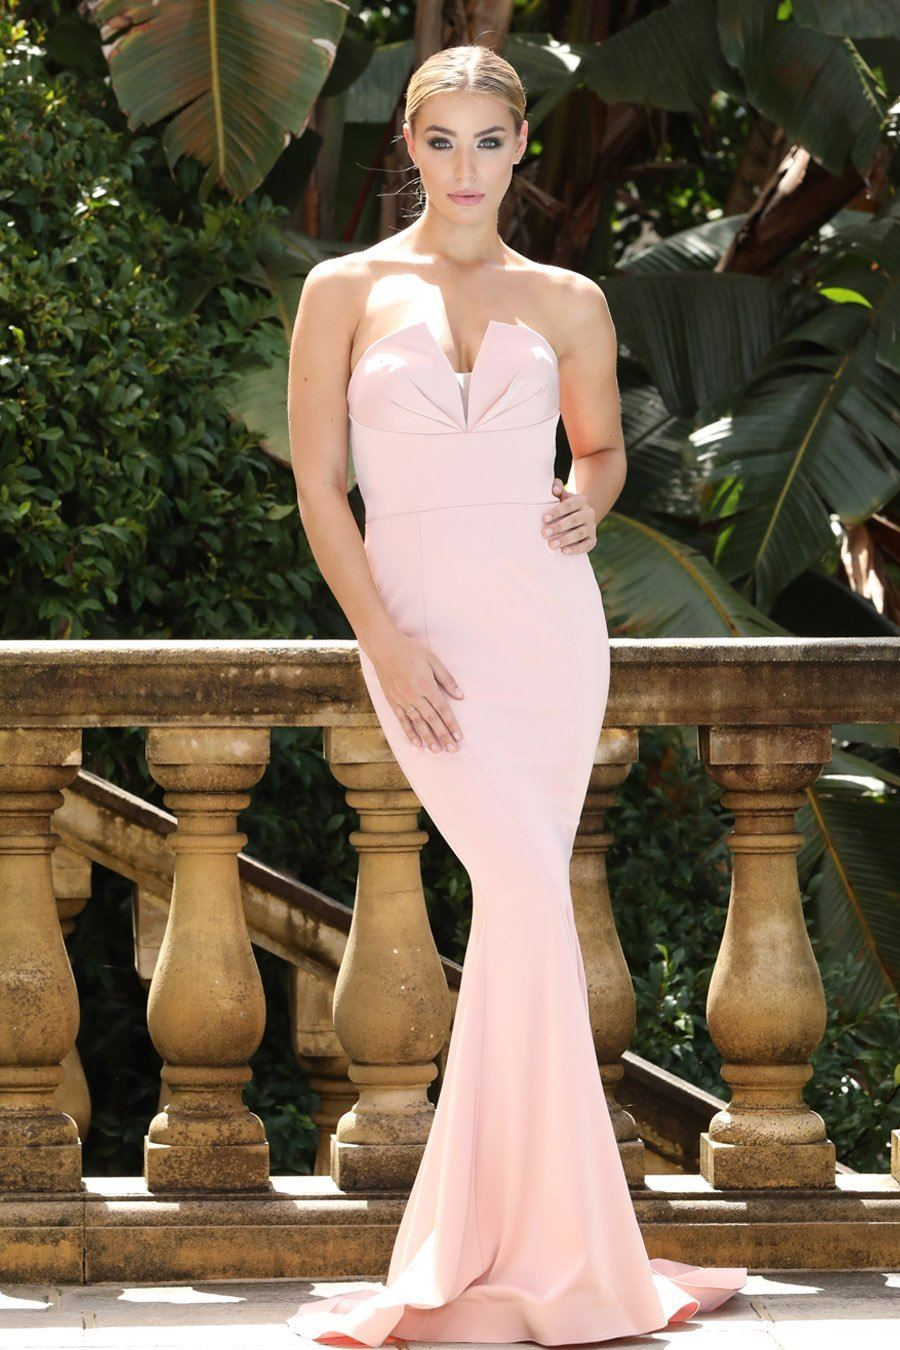 Front of Dusty Pink Strapless Floor Length Fit and Flare Mermaid Gown by Designer Tina Holly